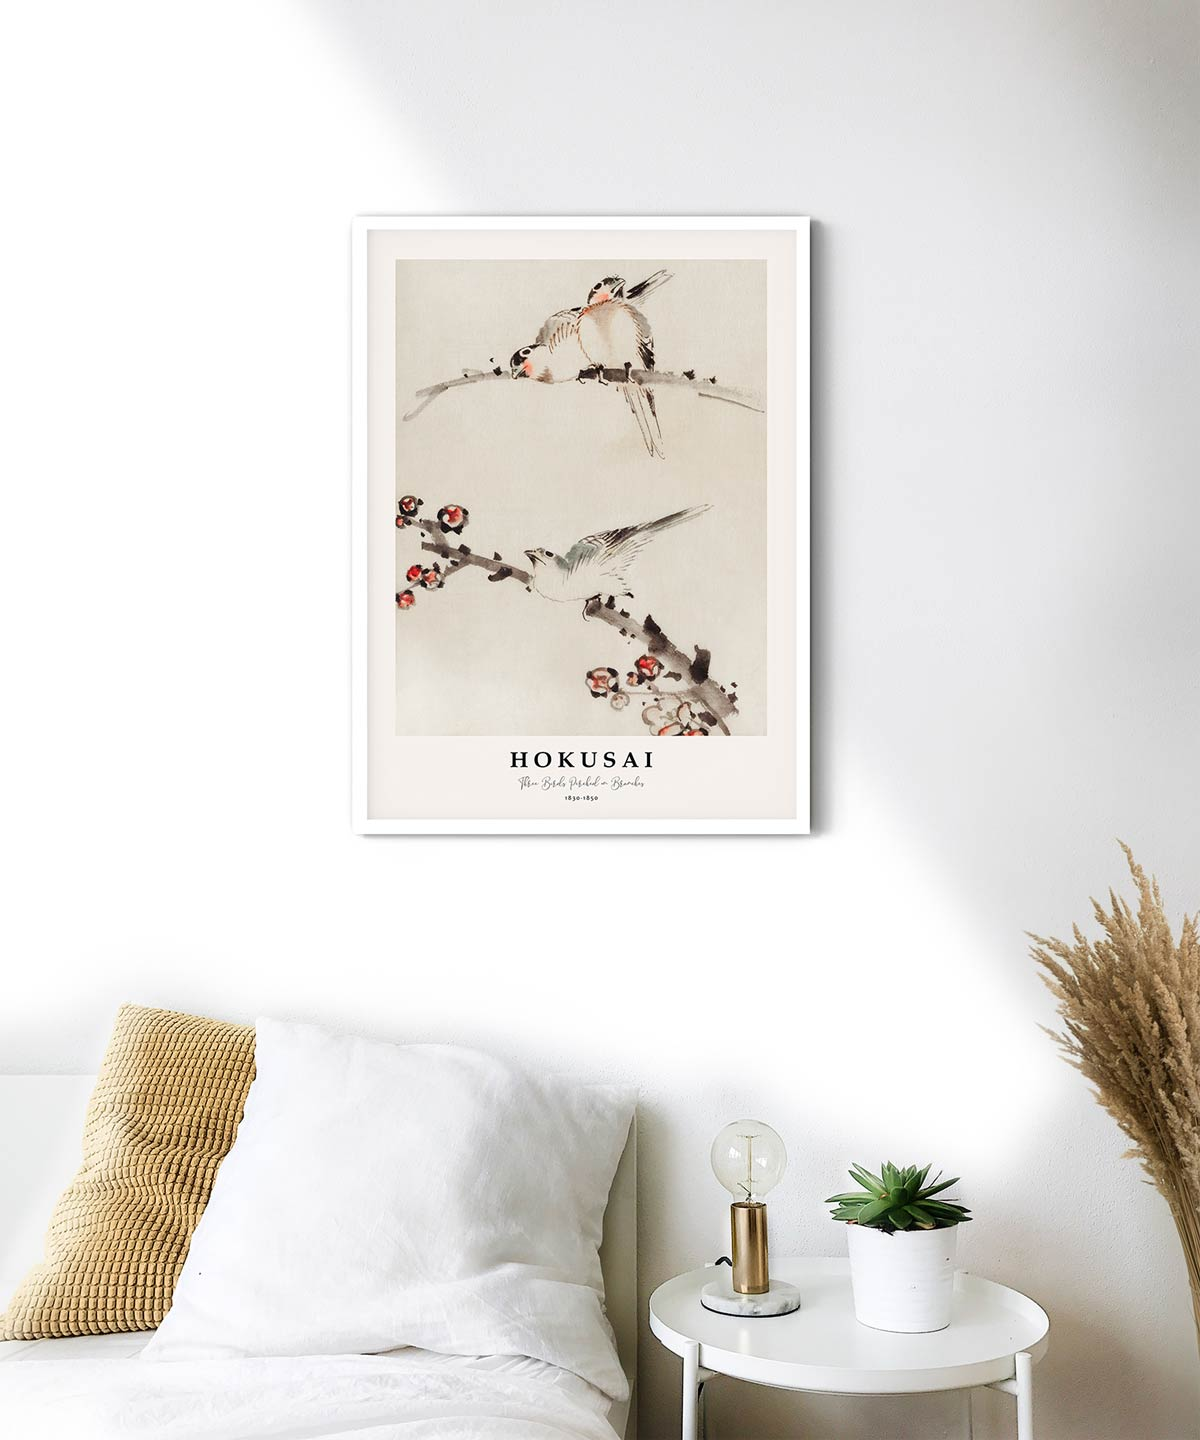 Hokusai-Three-Birds-Perched-on-Branches-Poster--White-Framed-on-Wall-Duwart